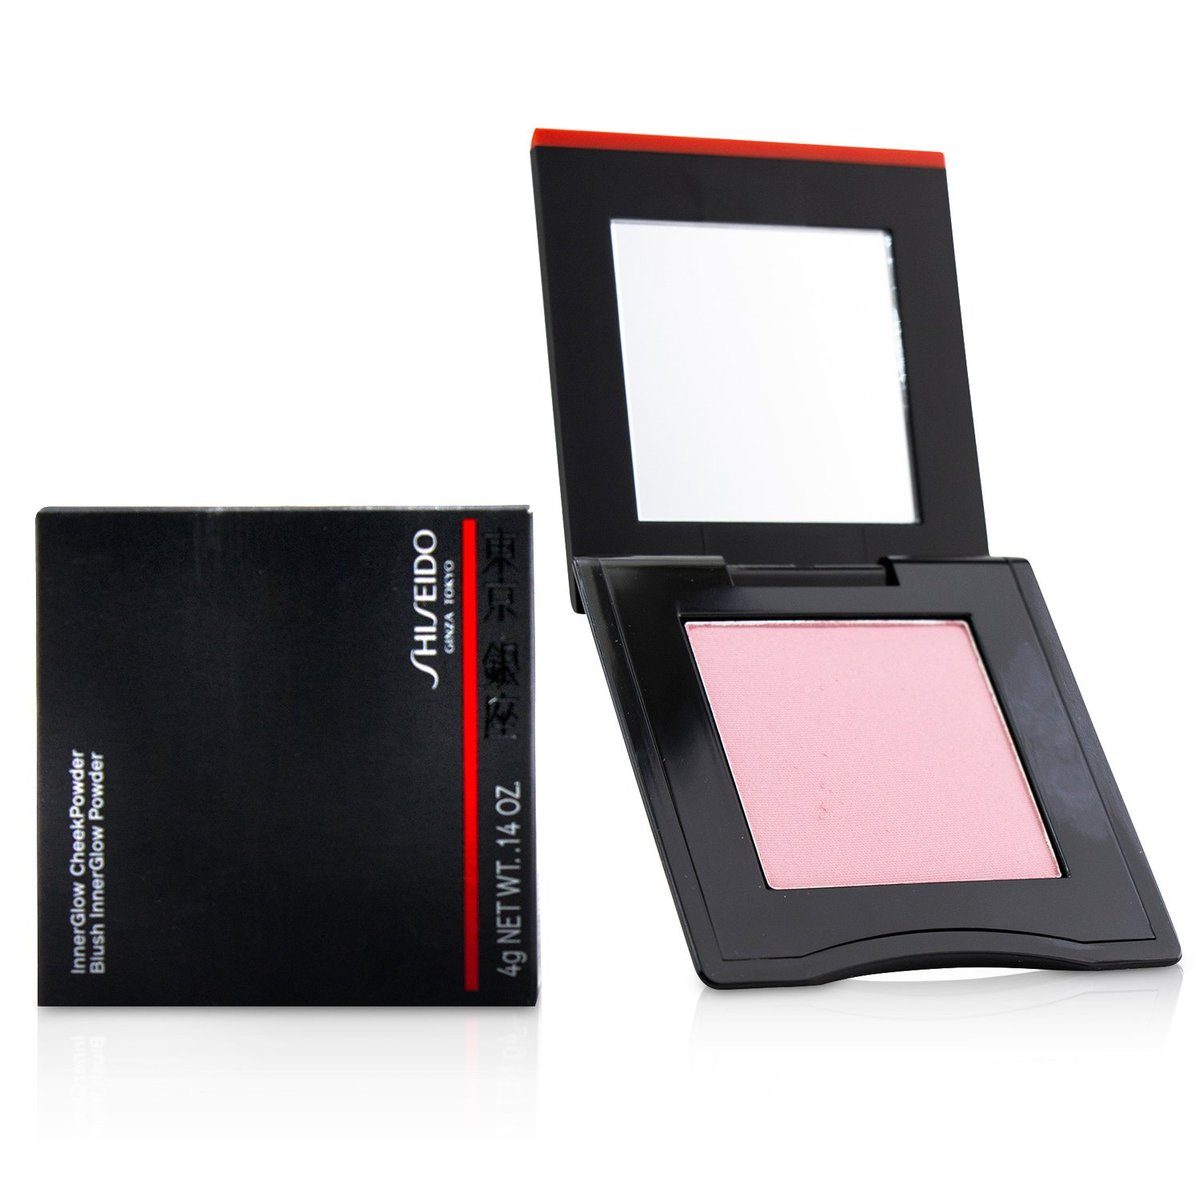 InnerGlow CheekPowder - # 04 Aura Pink (Muted Rose)  -[Parallel Import Product]